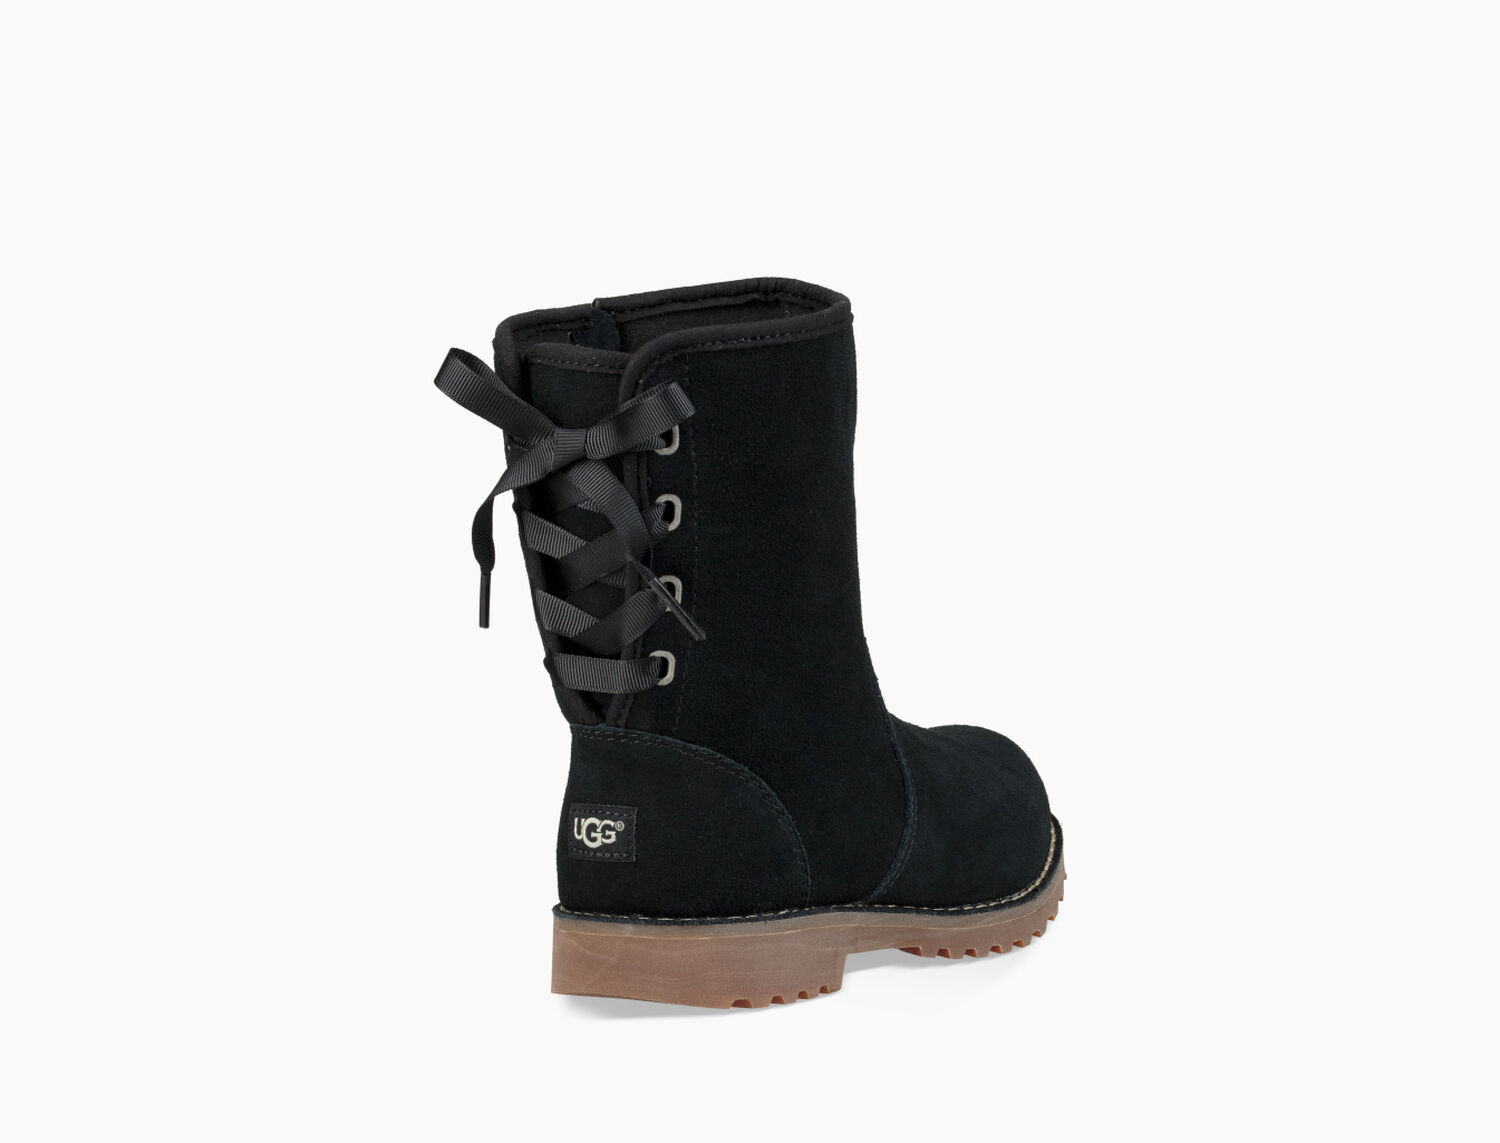 ce01dde2a20 Kids' Share this product Corene Boot